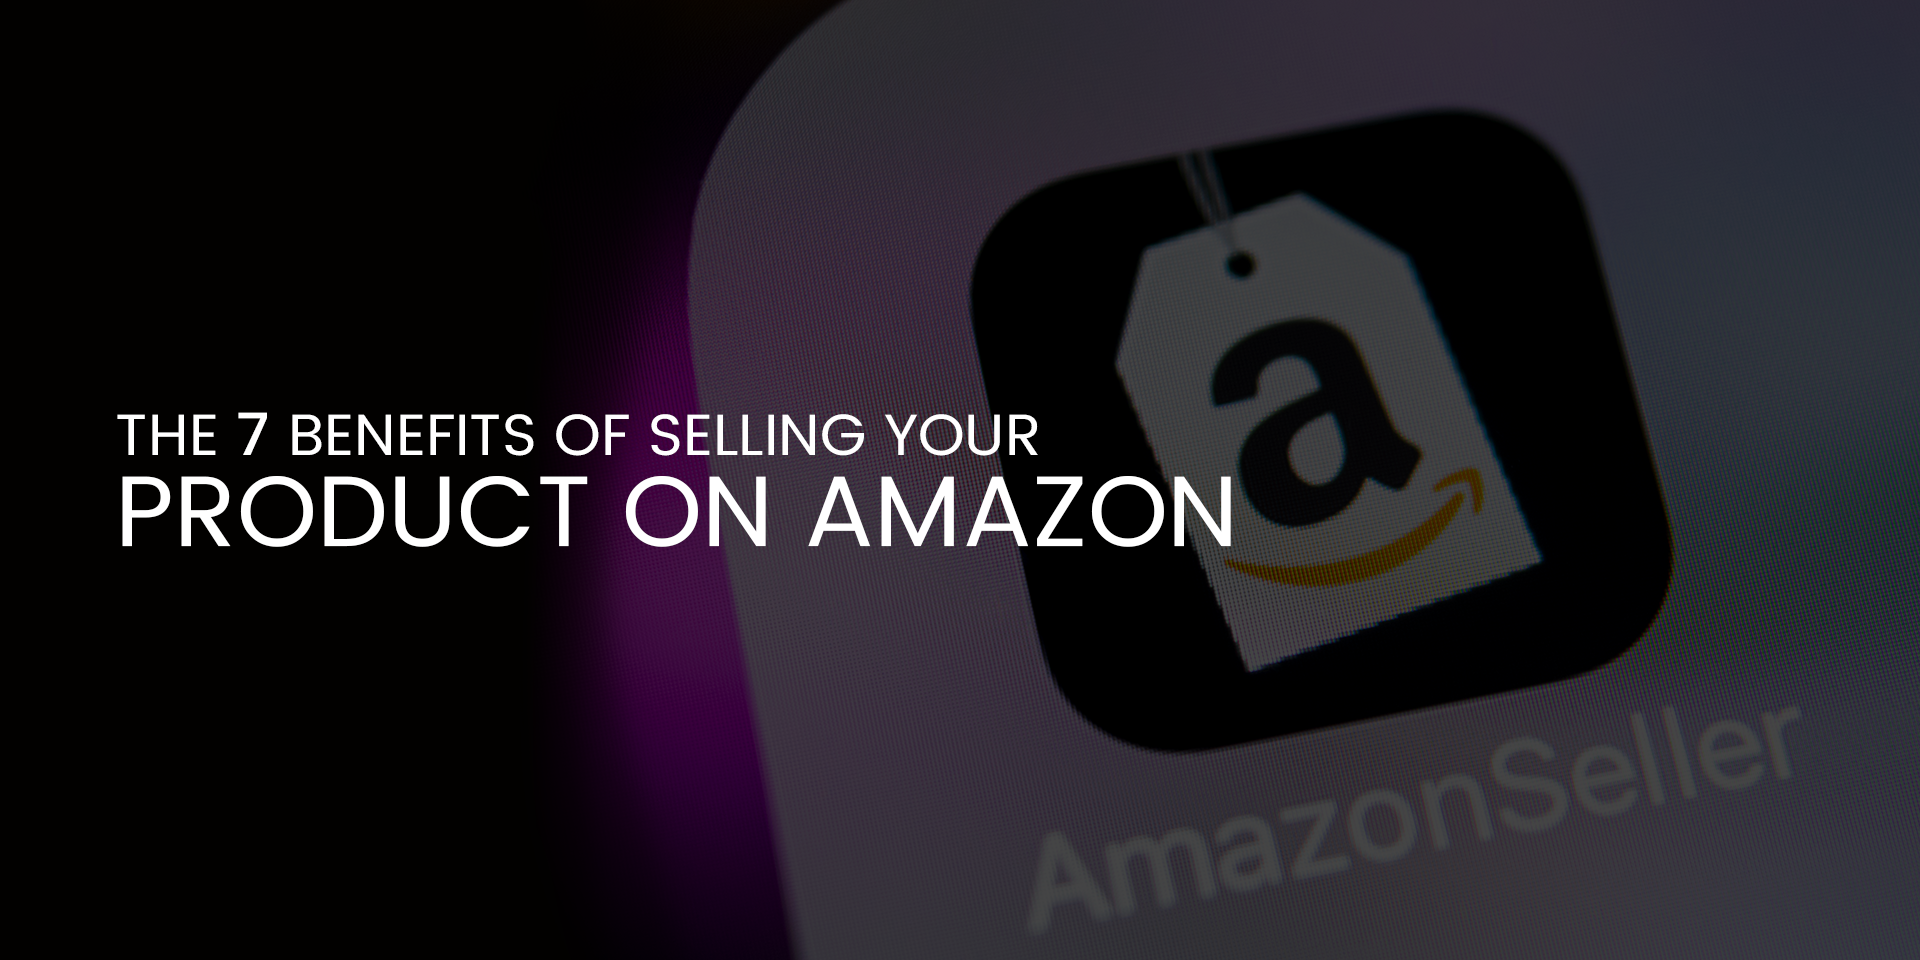 The 7 Benefits of Selling Your Product on Amazon